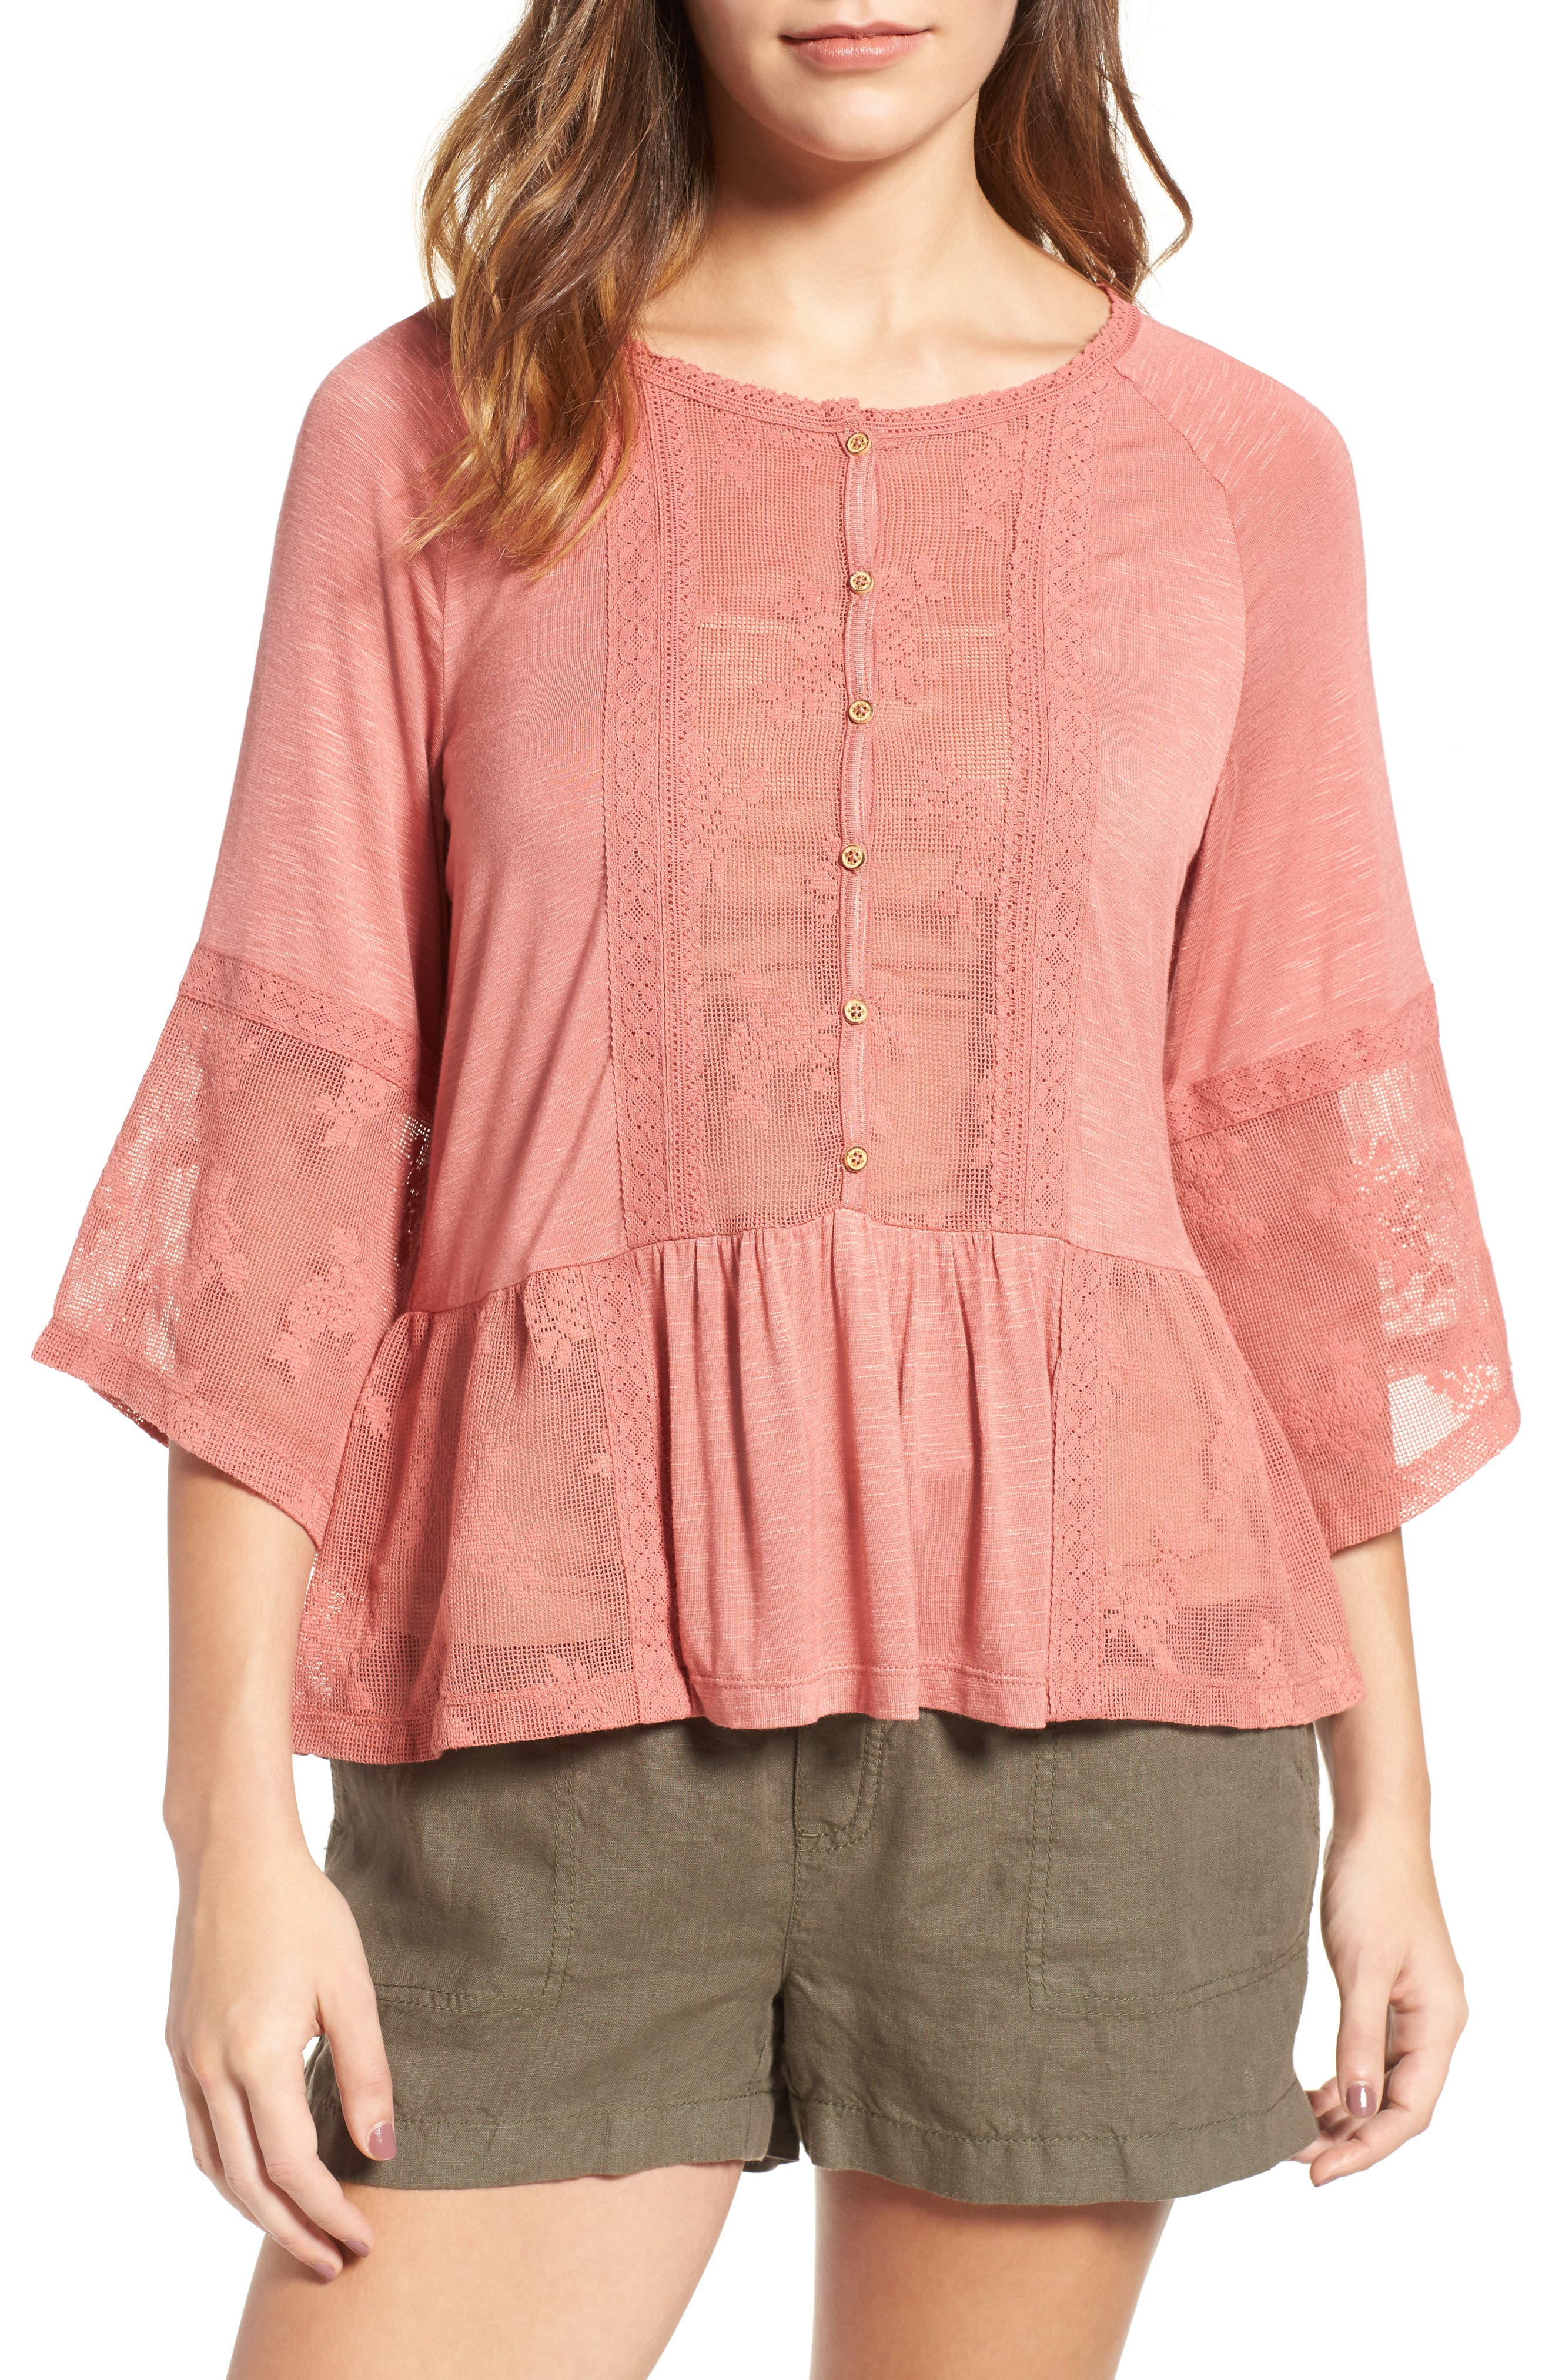 Wit & Wisdom Mixed Media Flounce Top (Nordstrom Exclusive)